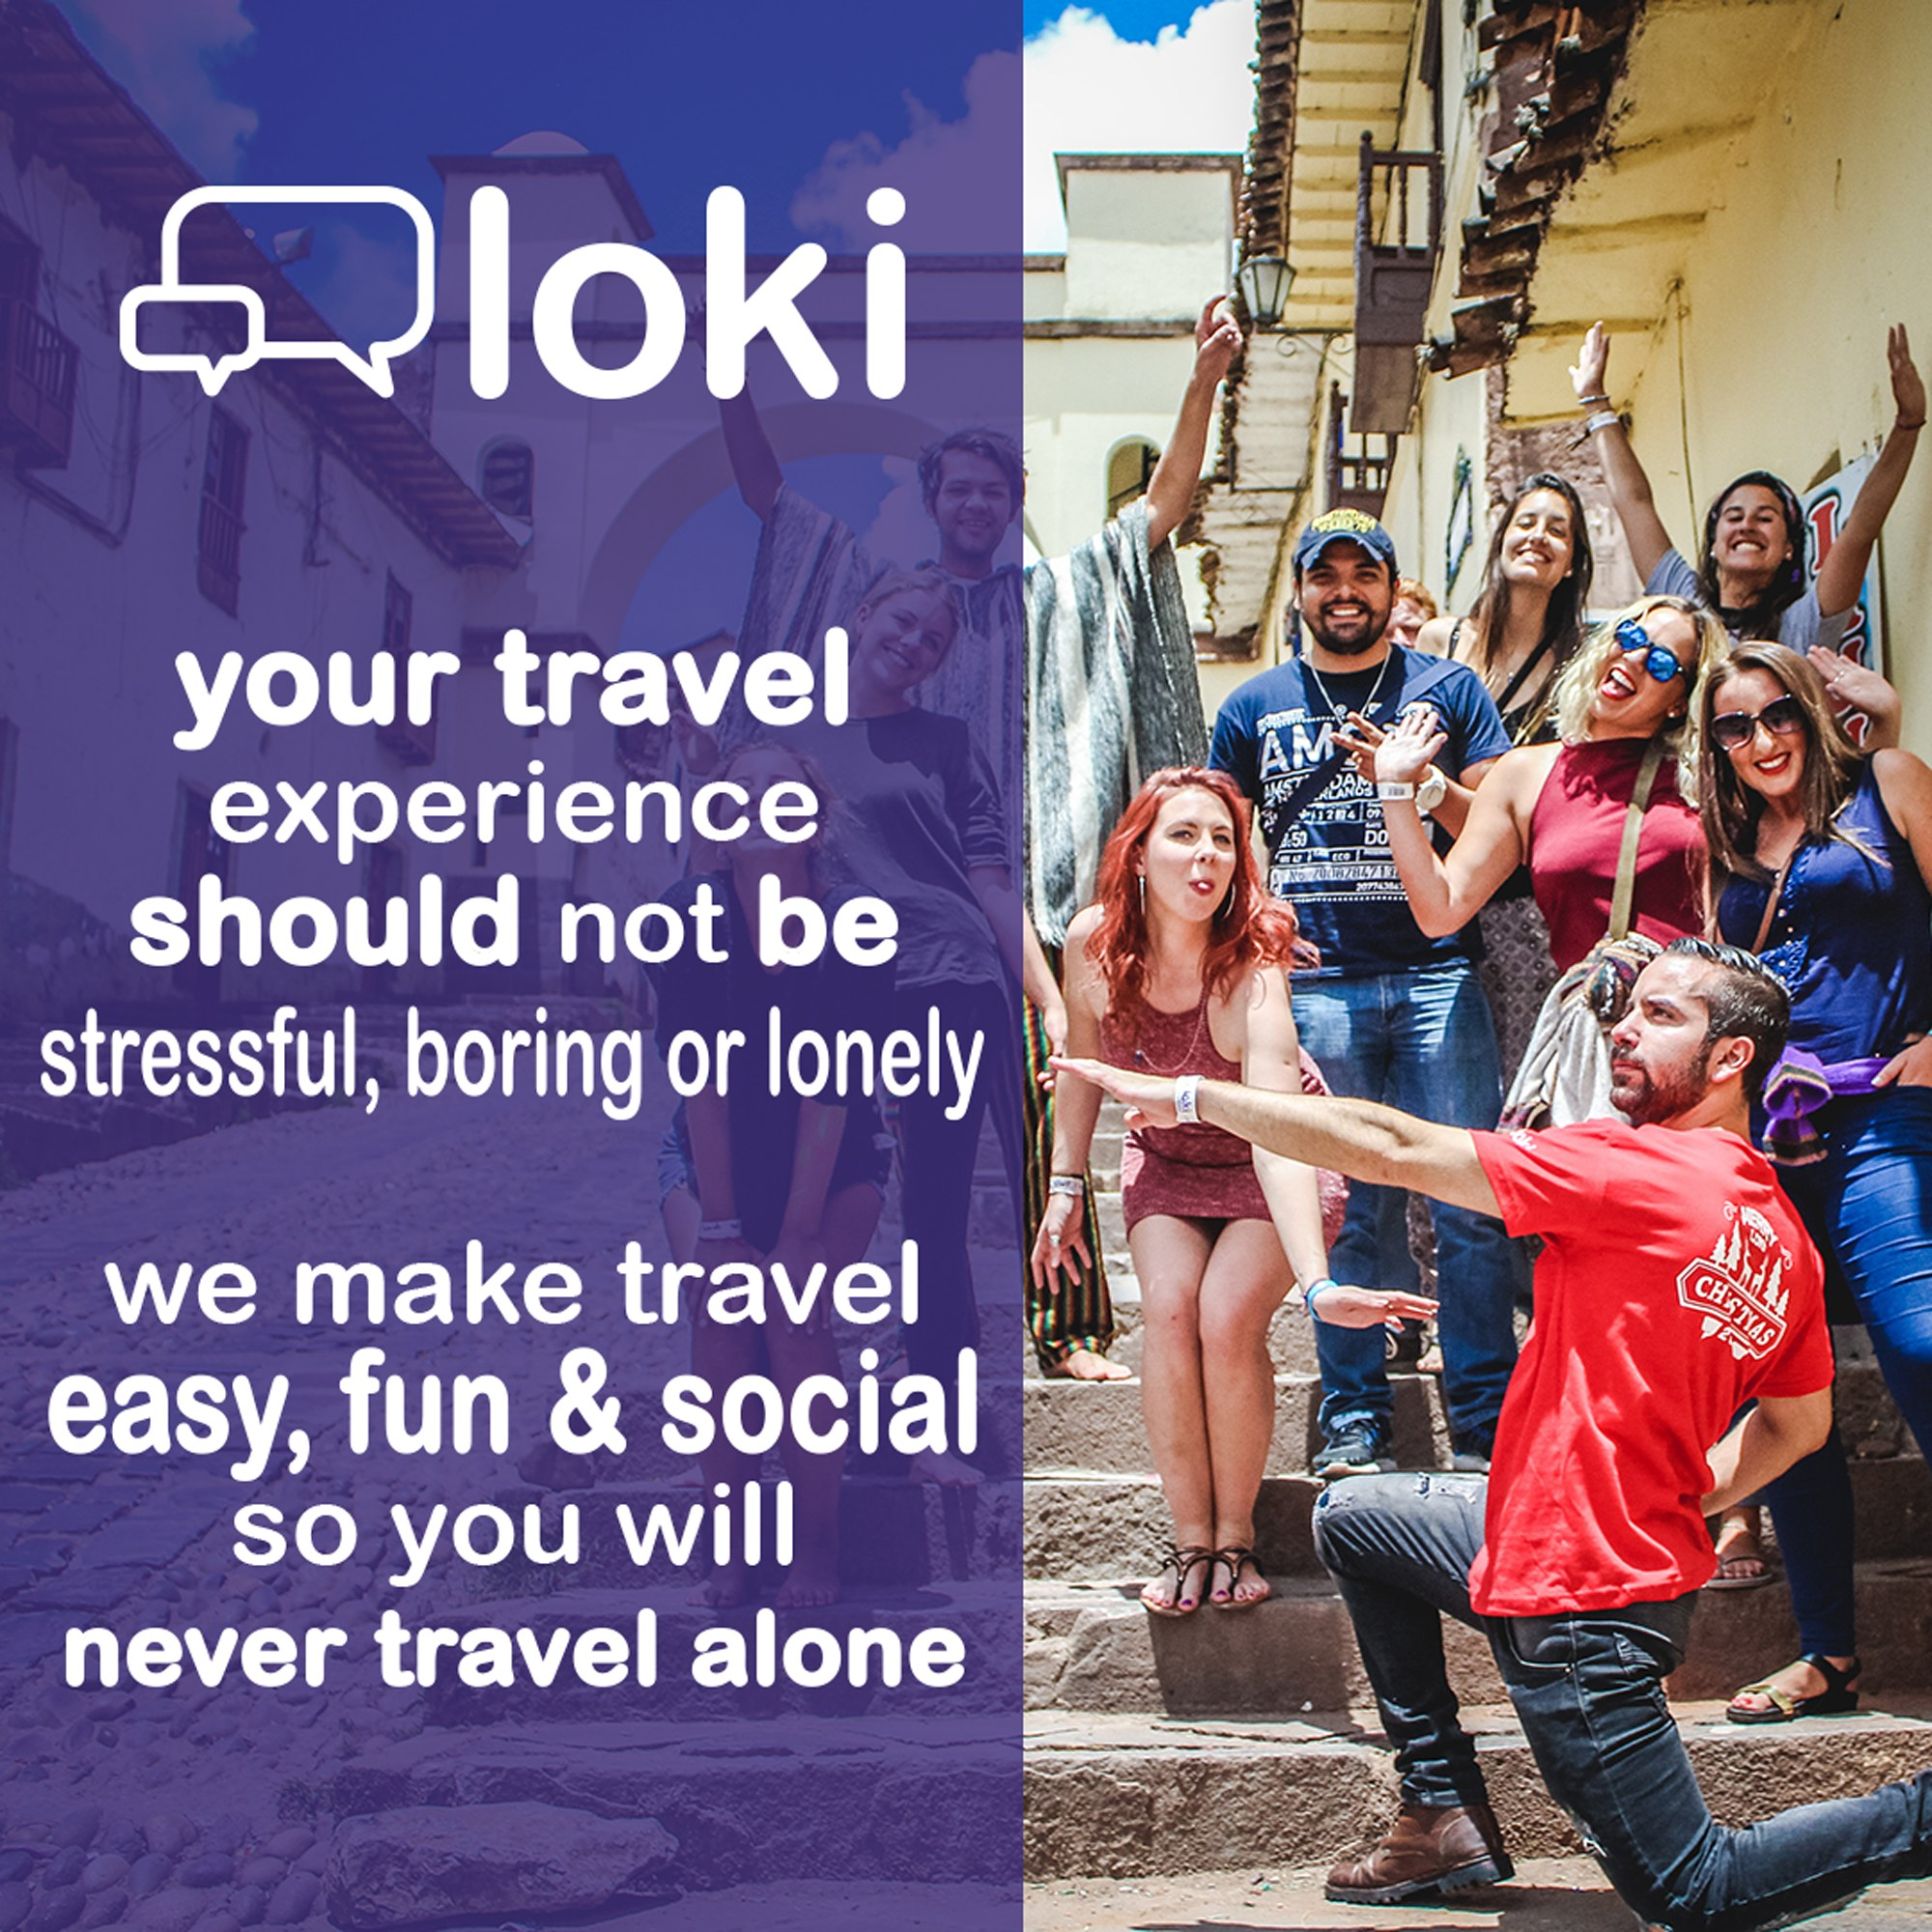 HOSTEL - loki Cusco